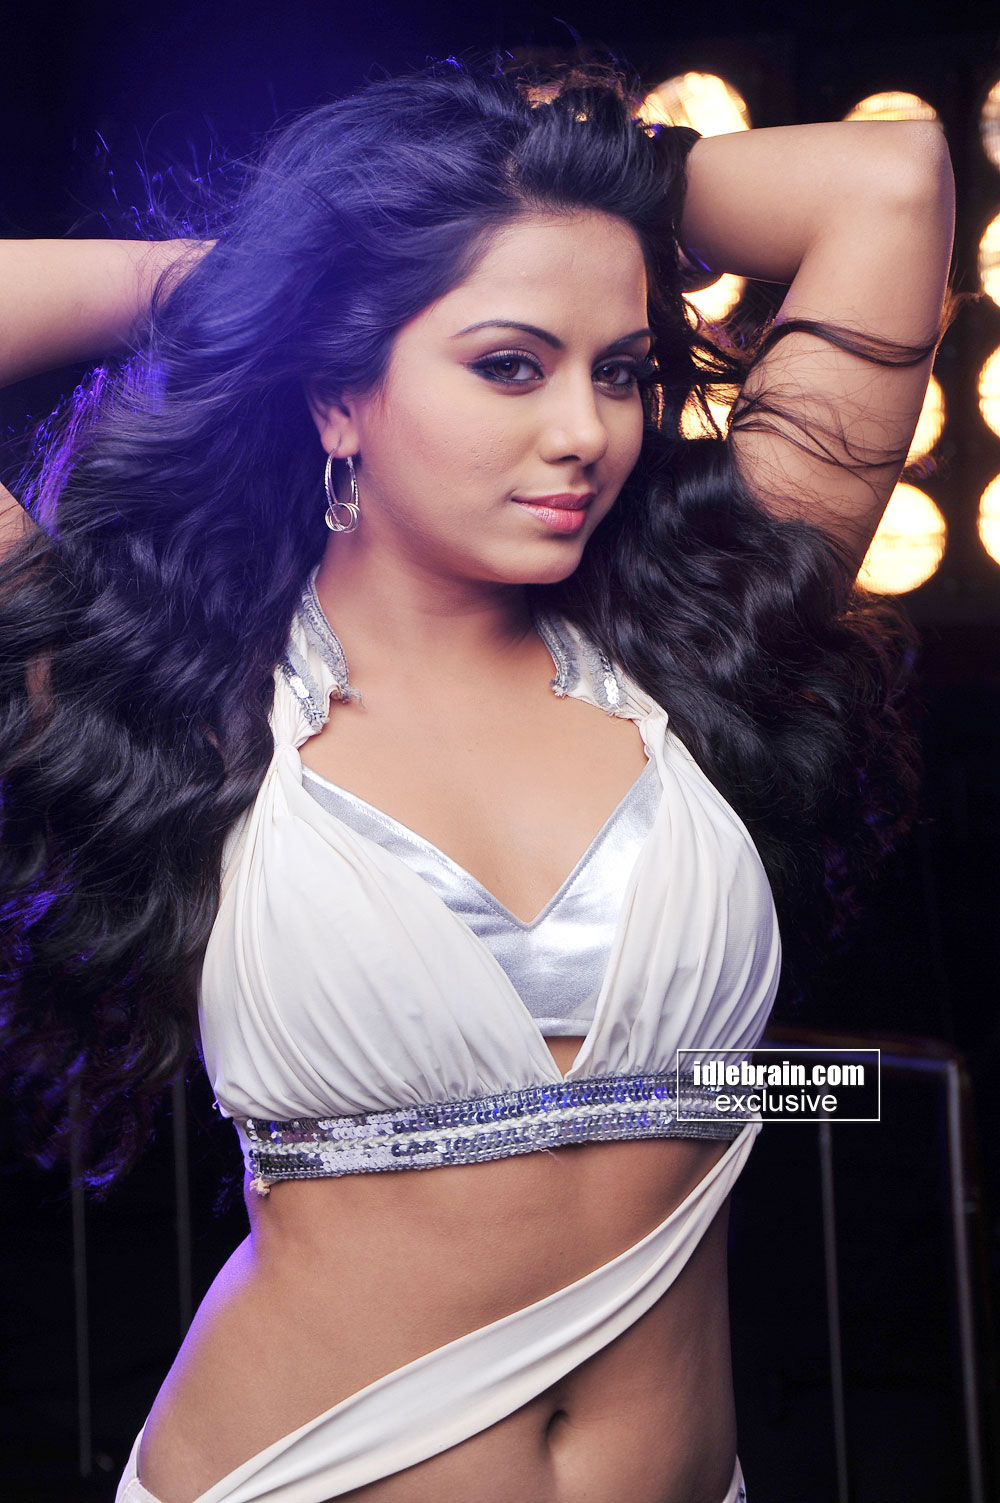 Rachna Mourya white bikini bra top  -  Rachana Mourya Item Song HOT PICS